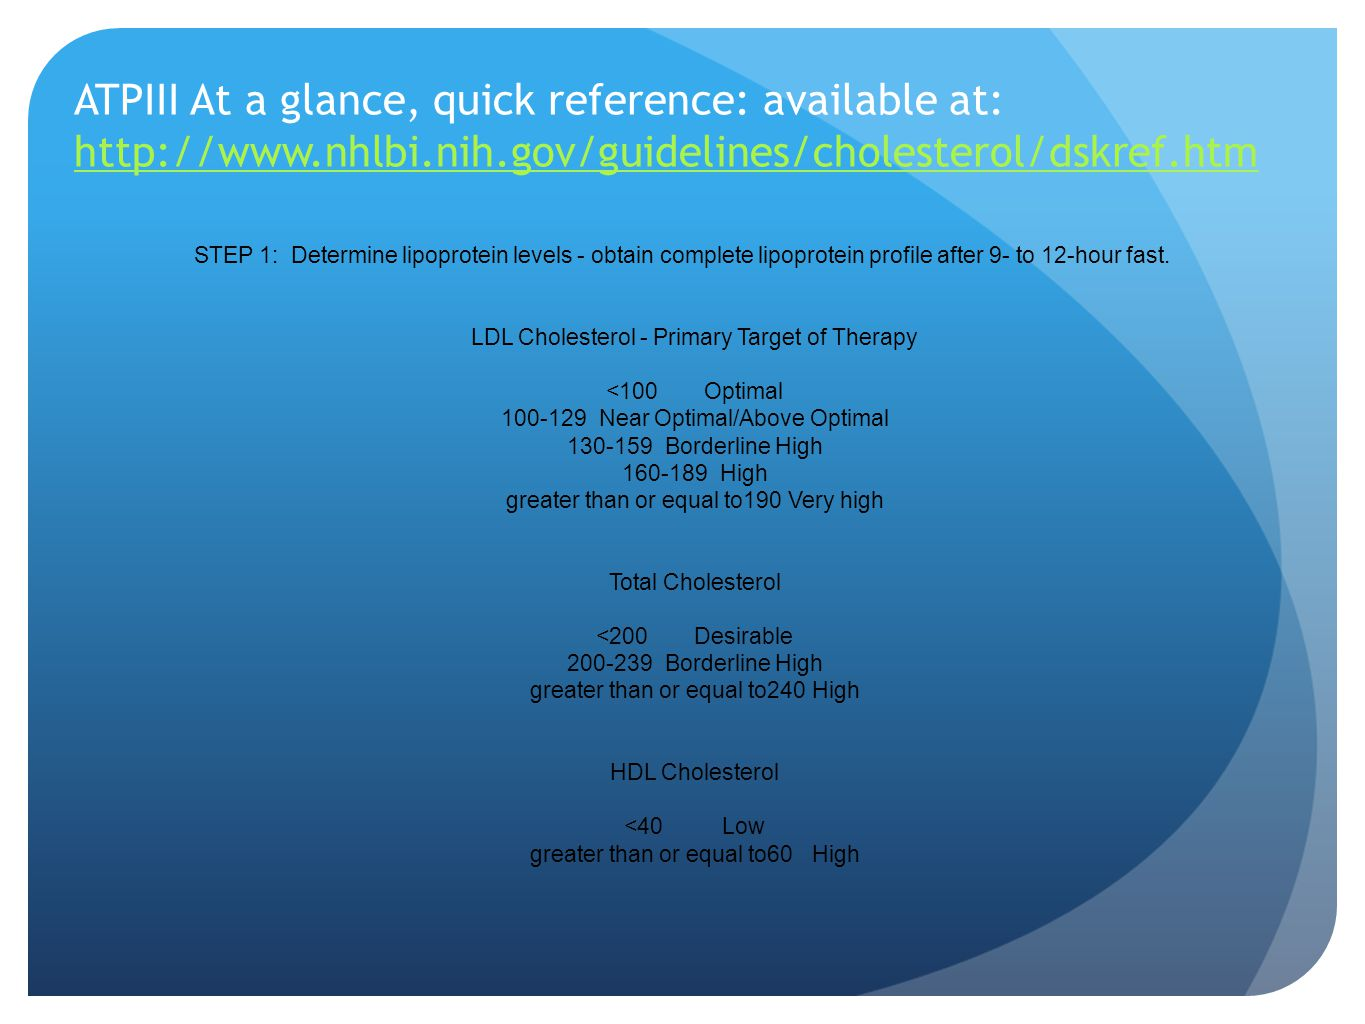 ATPIII At a glance, quick reference: available at: http://www. nhlbi